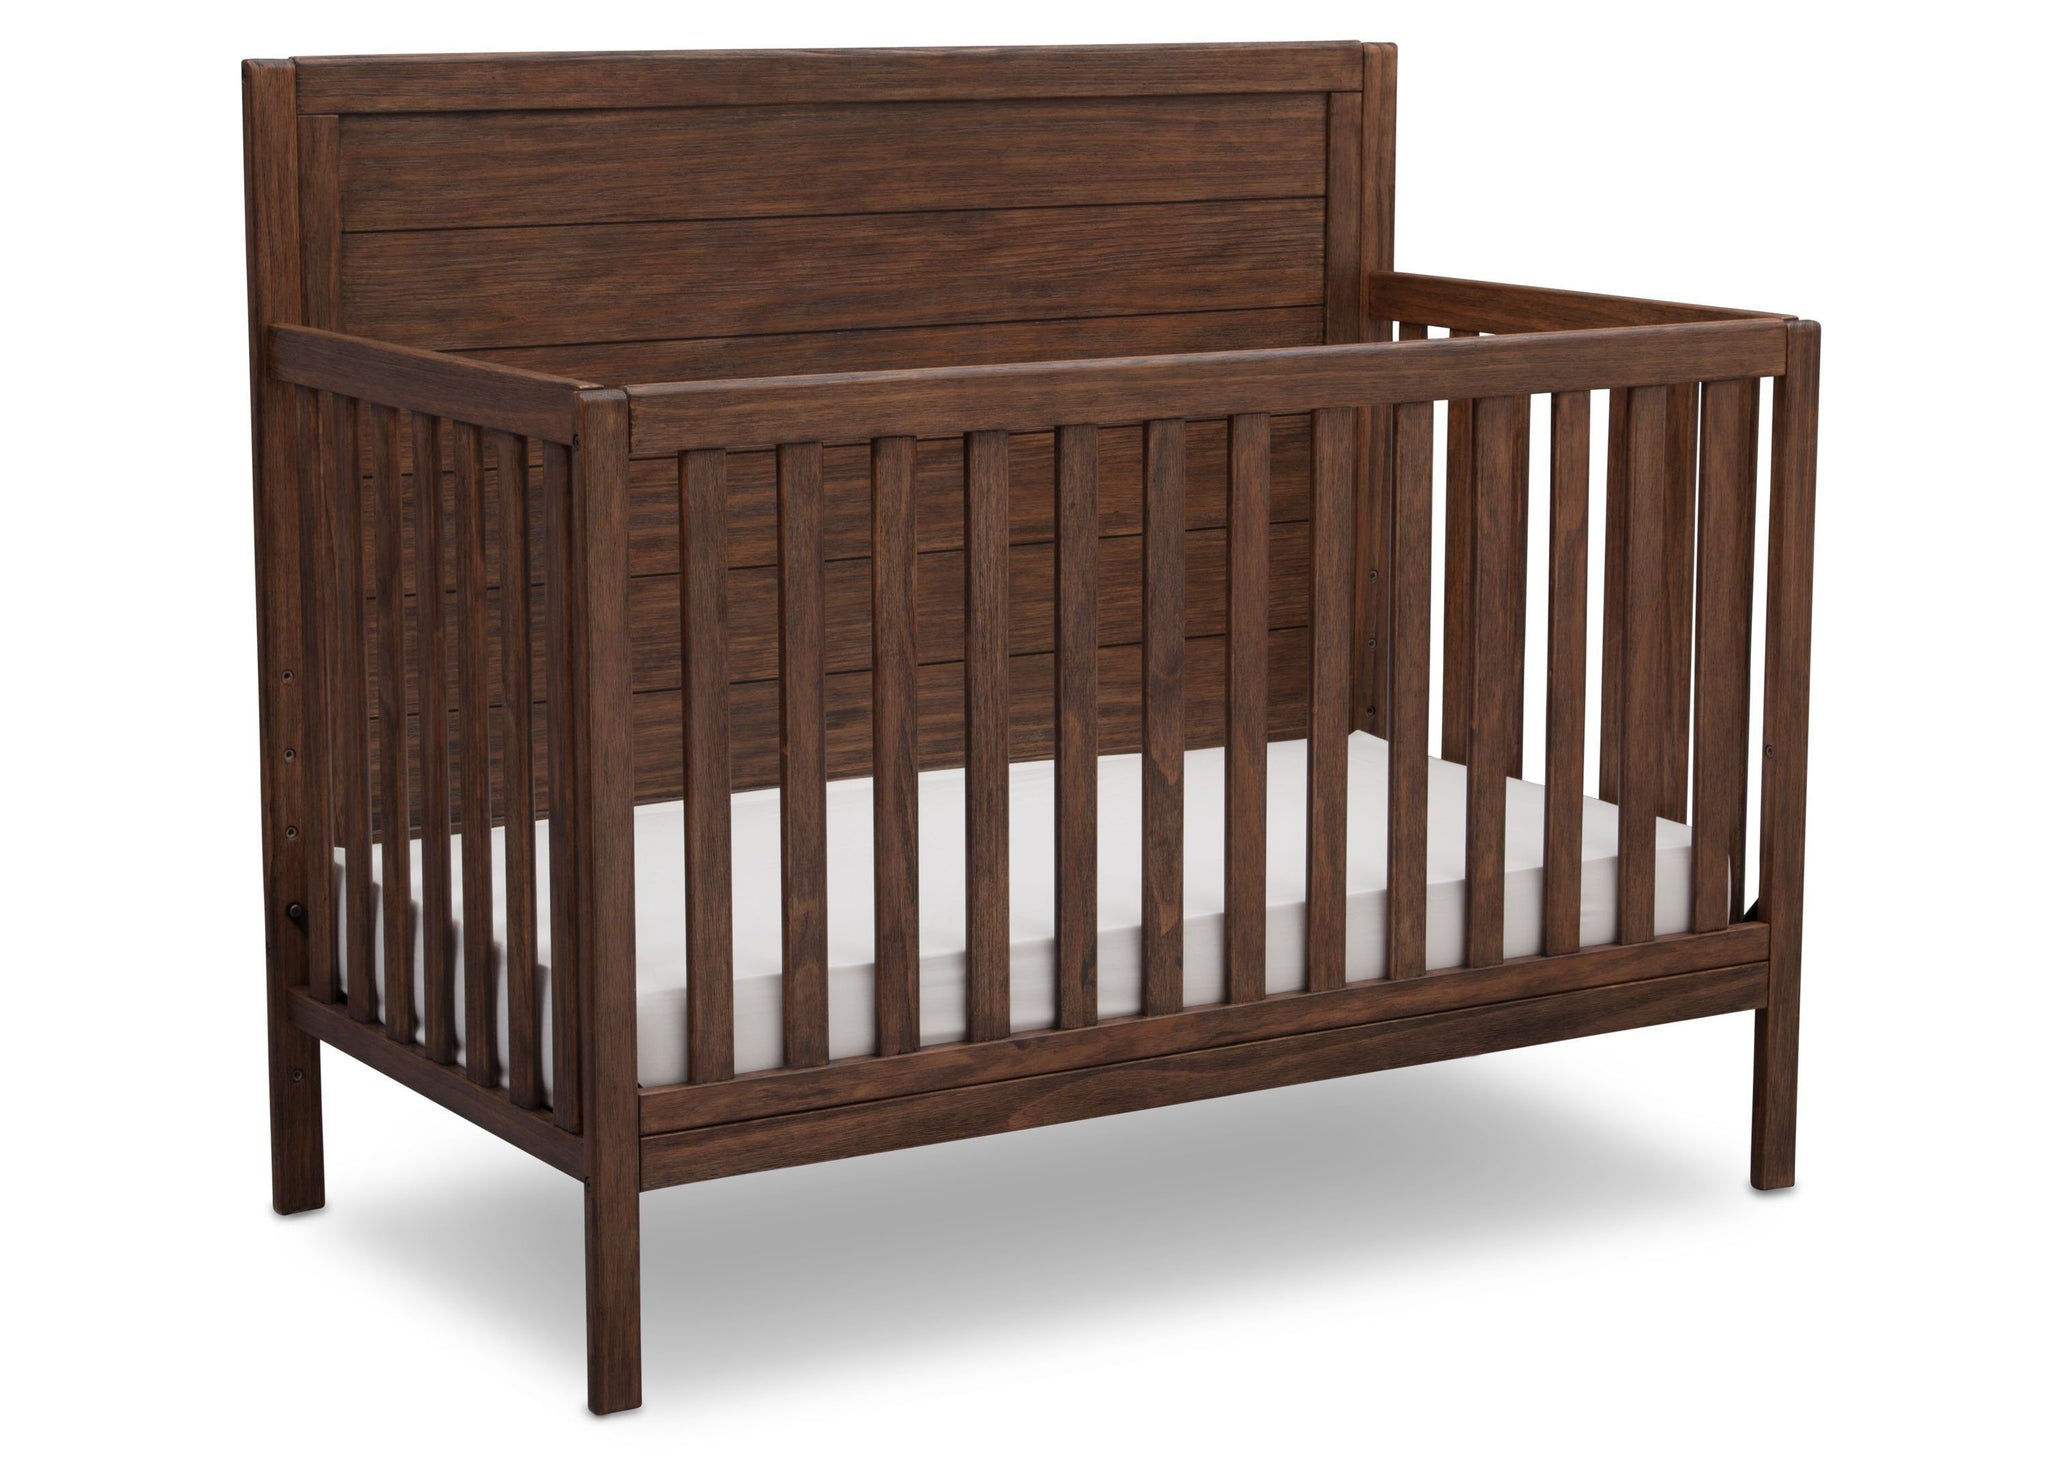 Serta Rustic Oak (229) Cambridge 4-in-1 Convertibel Crib, Angled View c3c